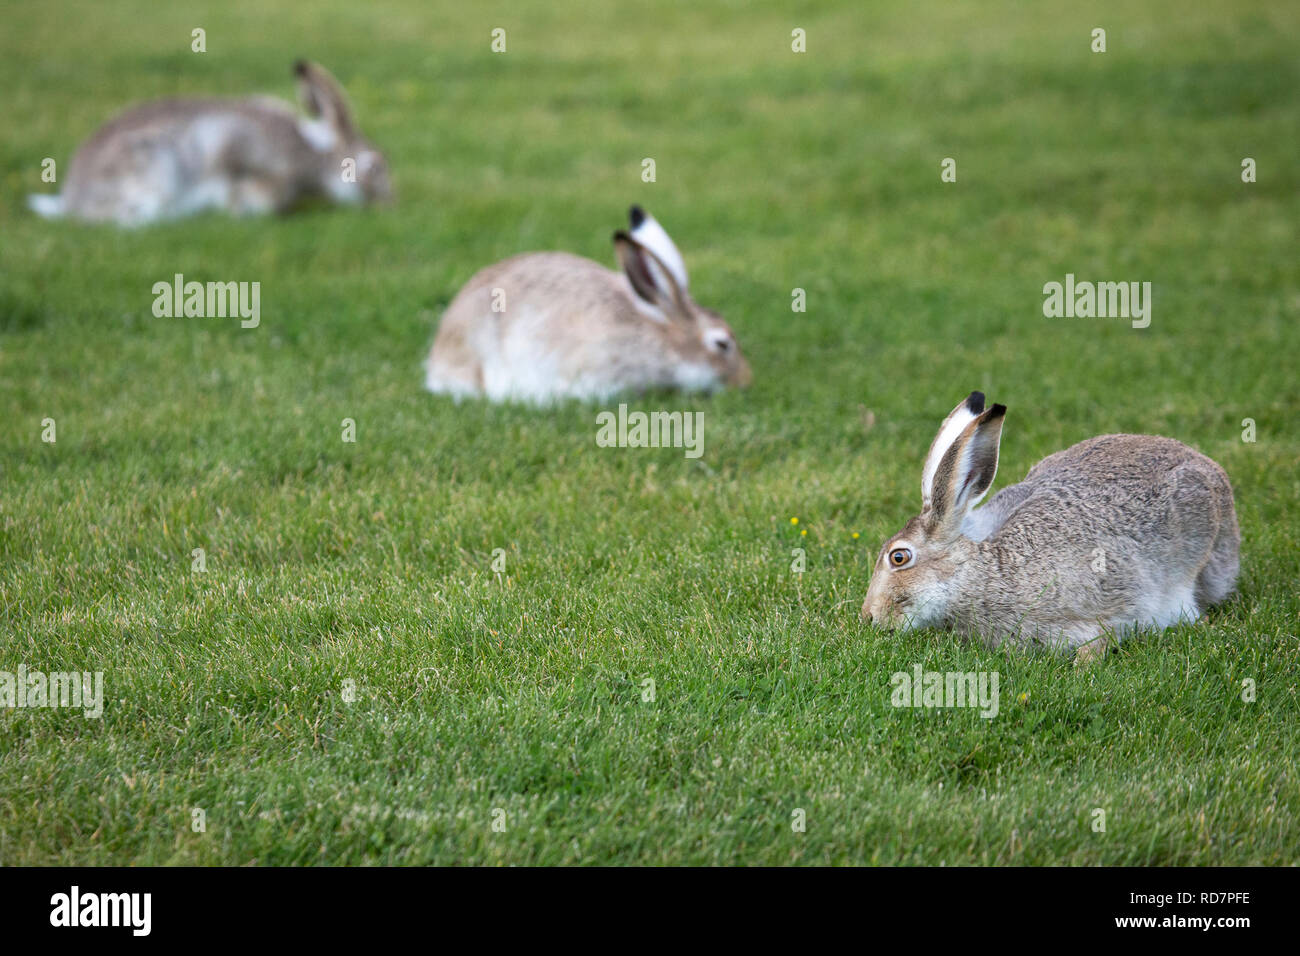 Three white tailed jackrabbits (Lepus townsendi) grazing on urban lawn - Stock Image